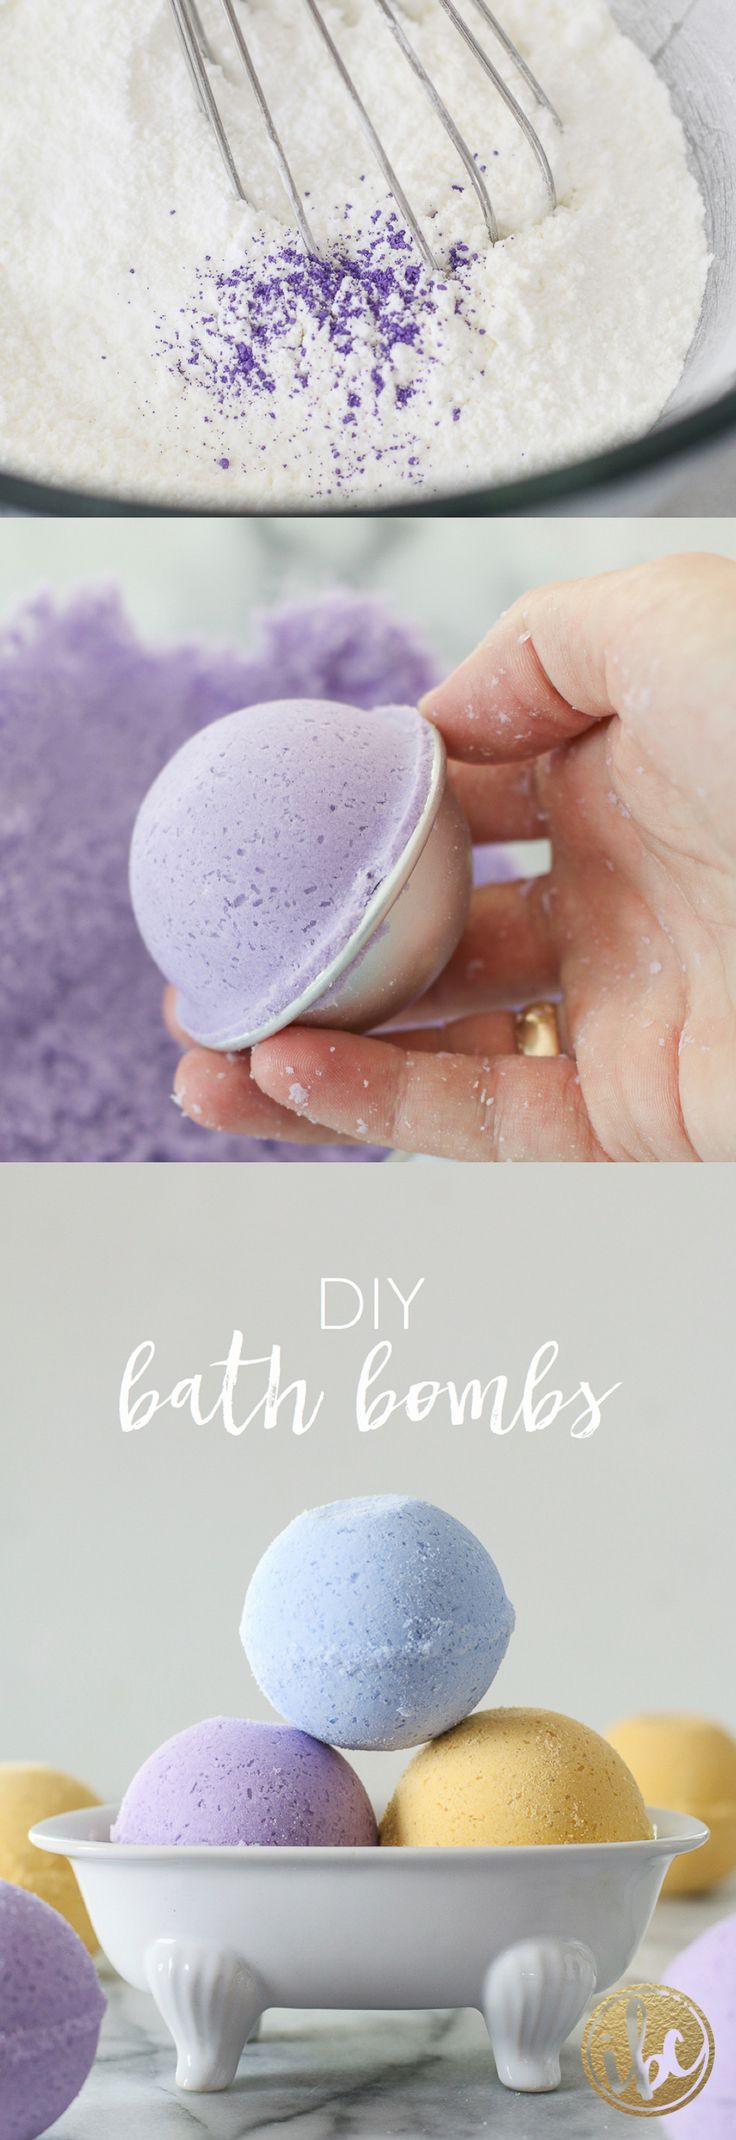 Best 25 christmas gift ideas ideas on pinterest creative diy bath bombs negle Choice Image